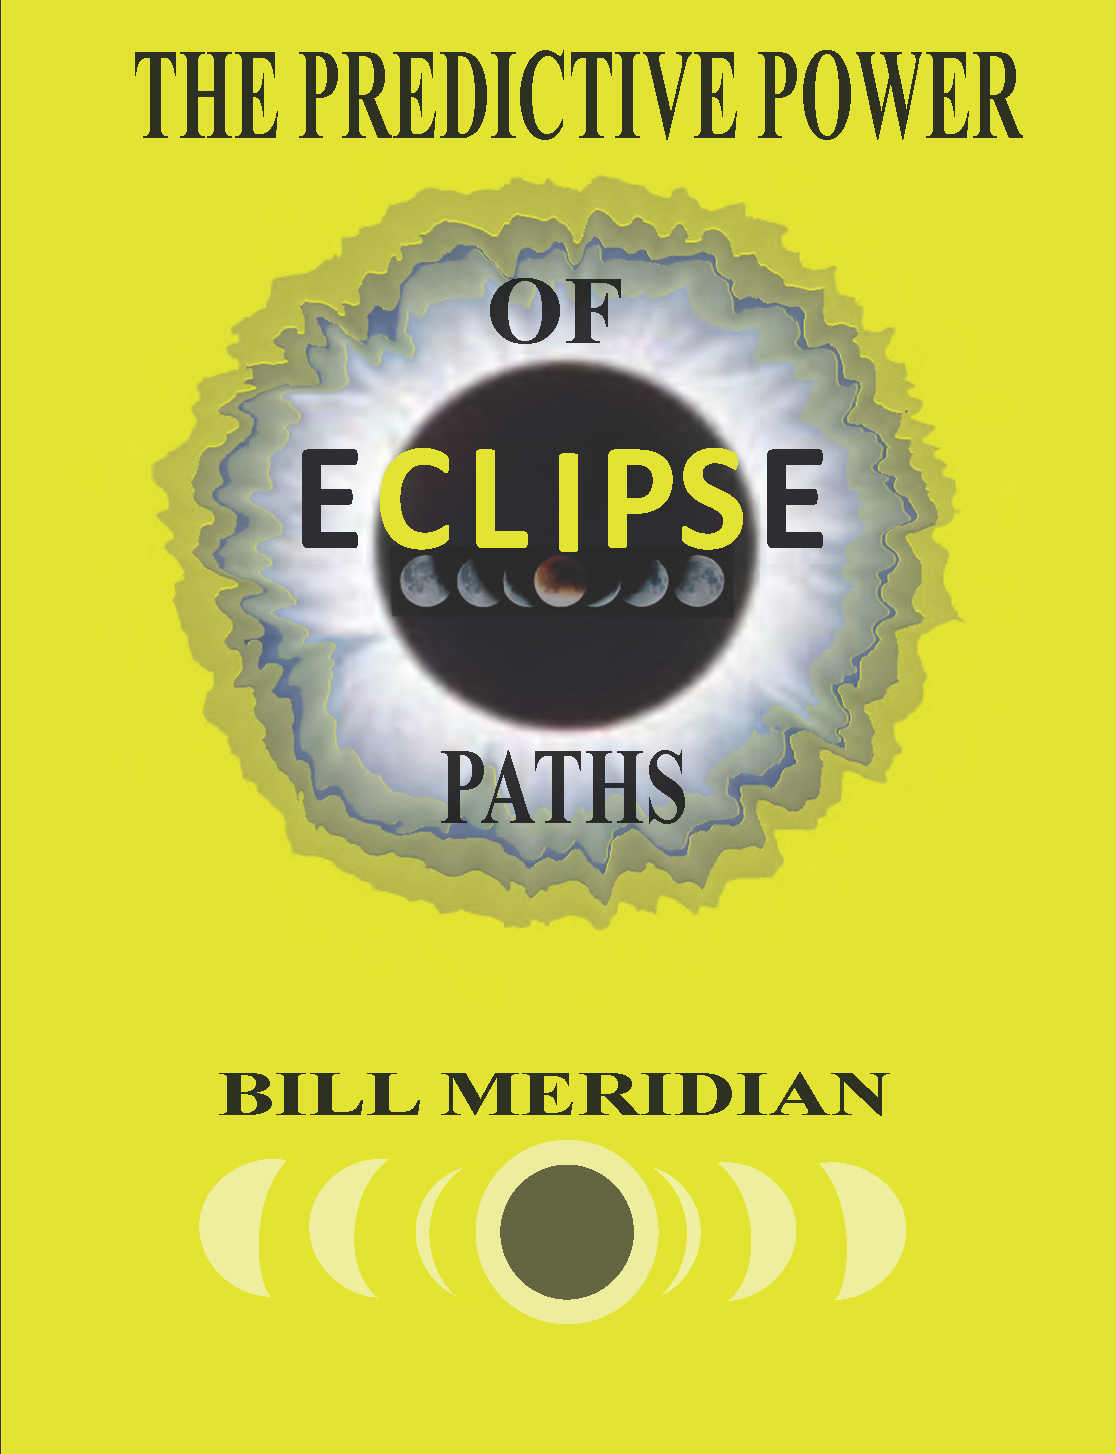 The Predictive Power of Eclipse Paths by Bill Meridian